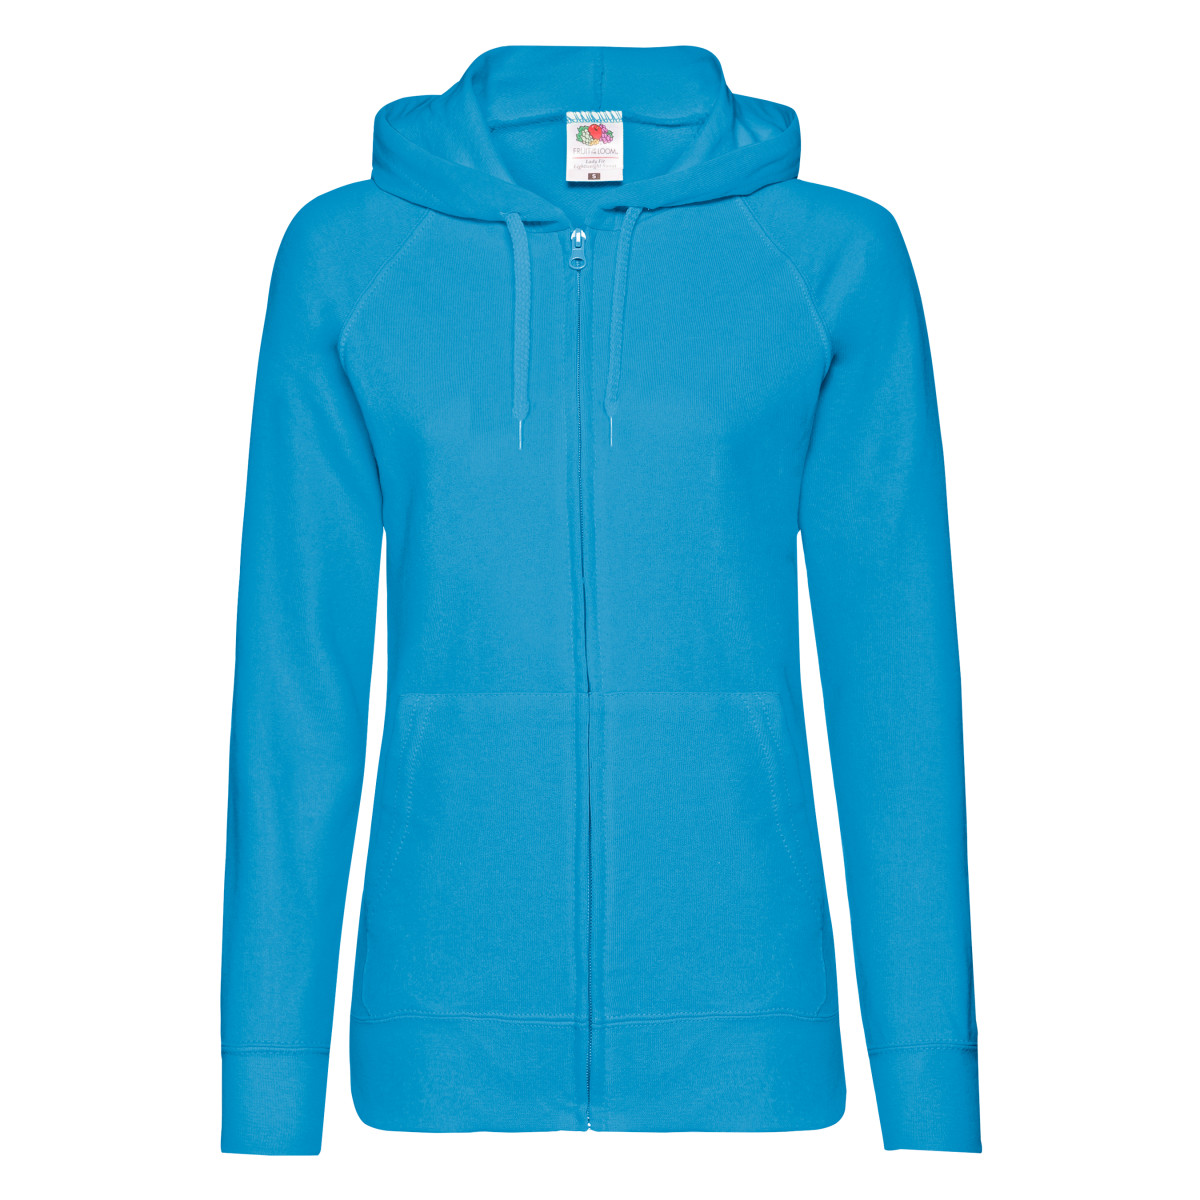 Fruit Of The Loom Ladies Fitted Lightweight Hooded Sweatshirts Jacket / Zoodie (240 GSM) (XS) (Azure Blue)